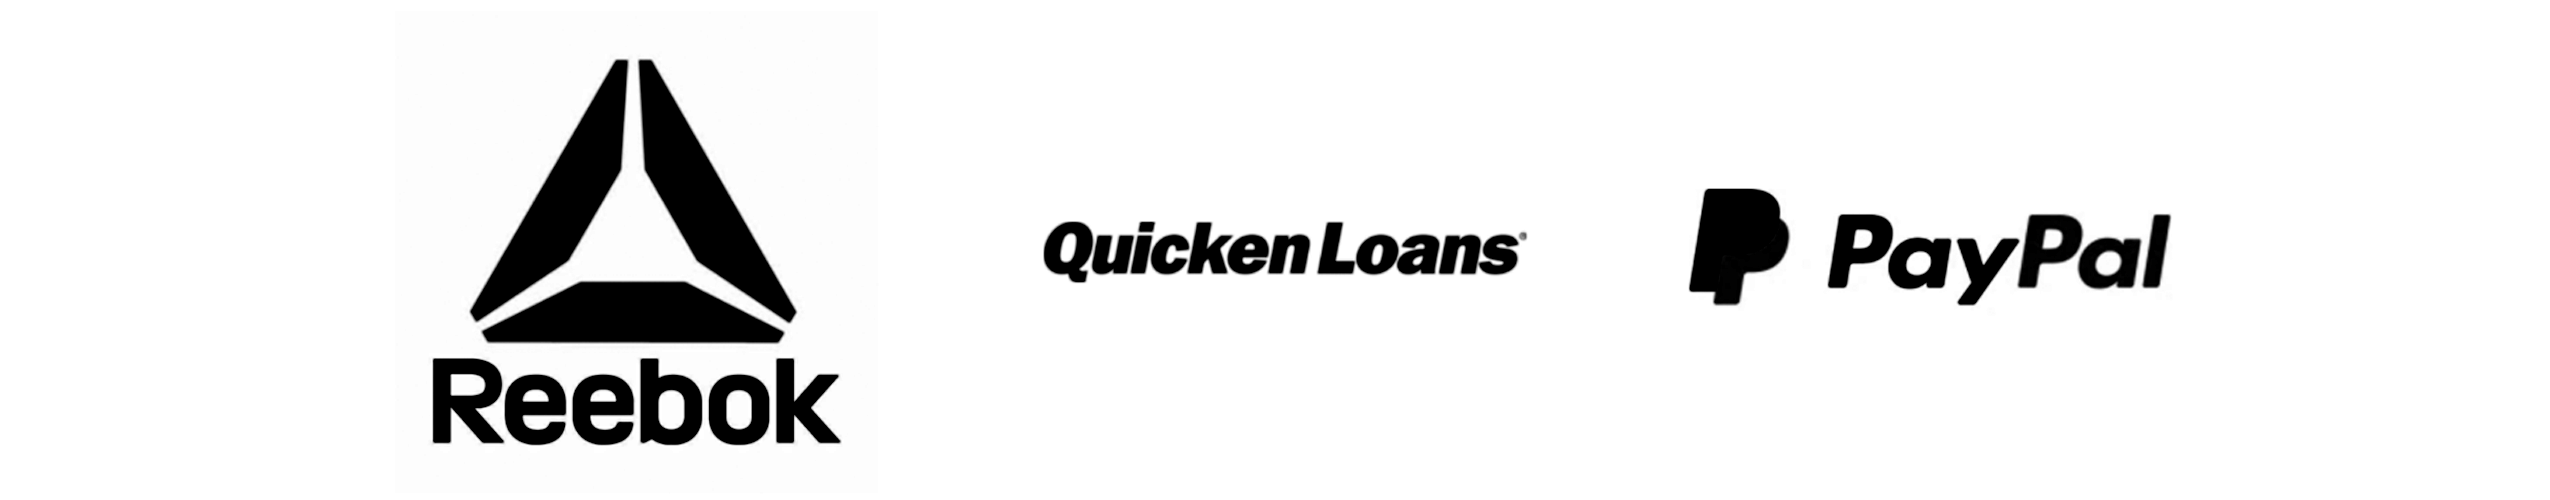 Reebok, Quicken Loans and PayPal logos